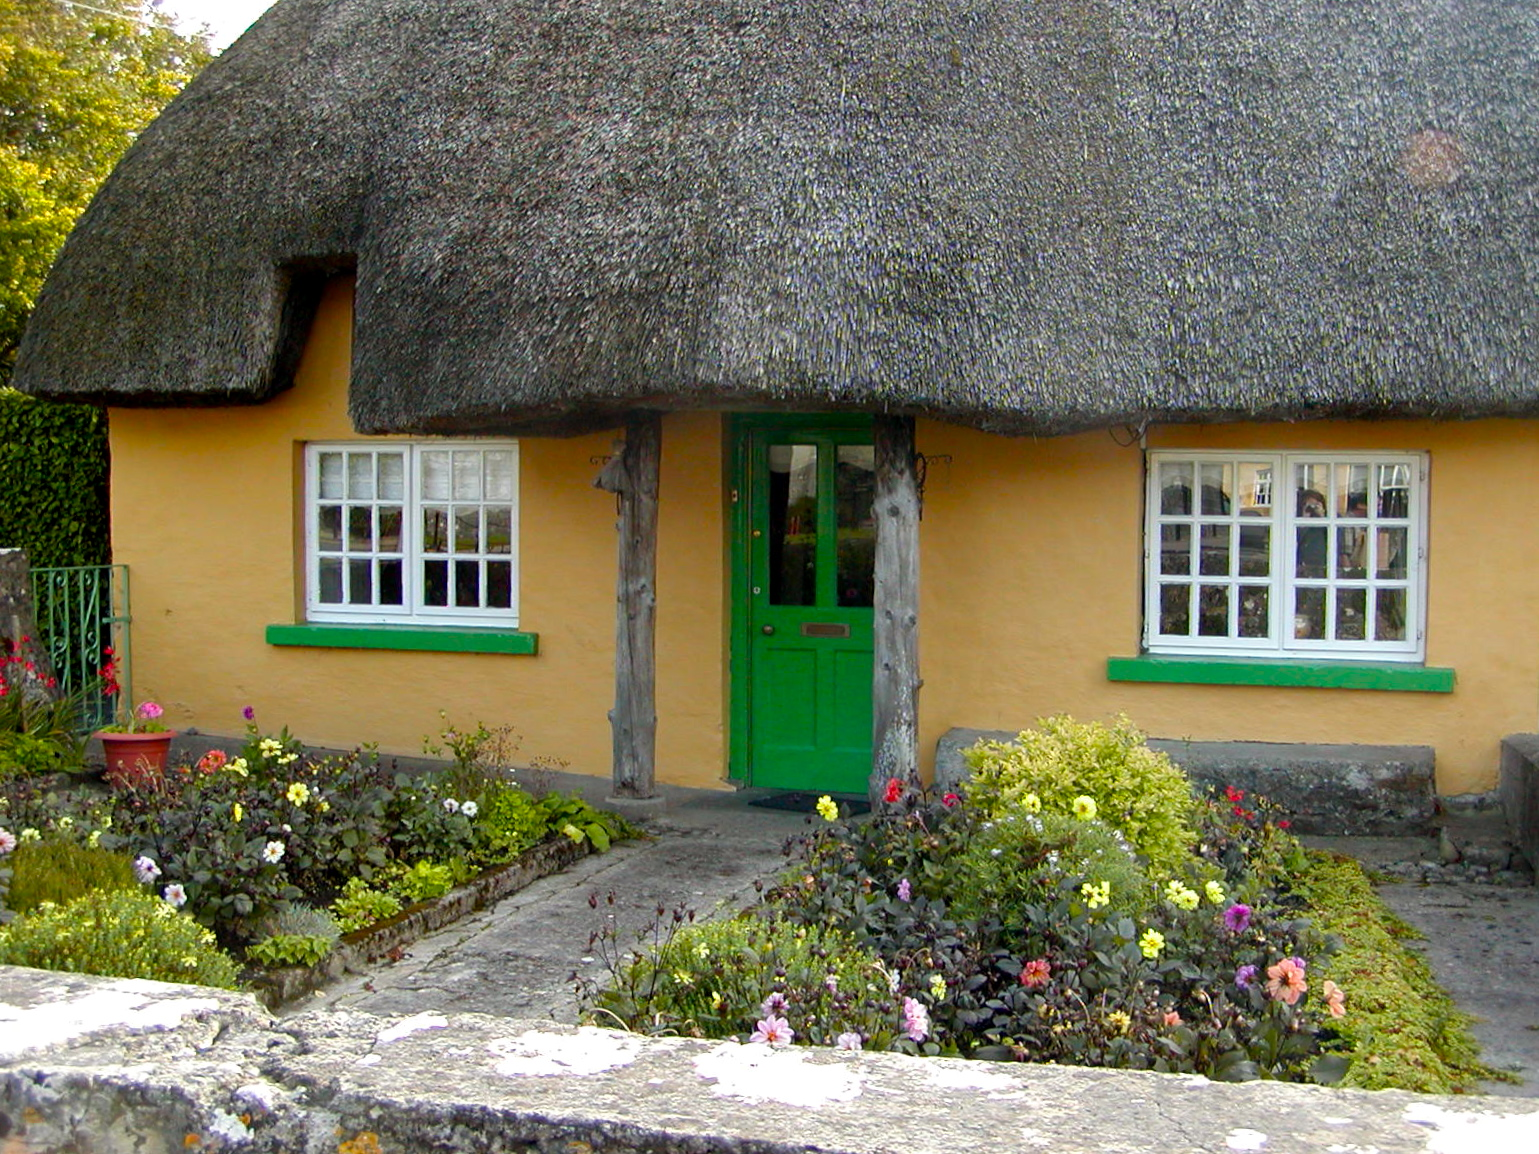 Adare thatched cottage irish fireside travel and culture - The thatched cottage ...